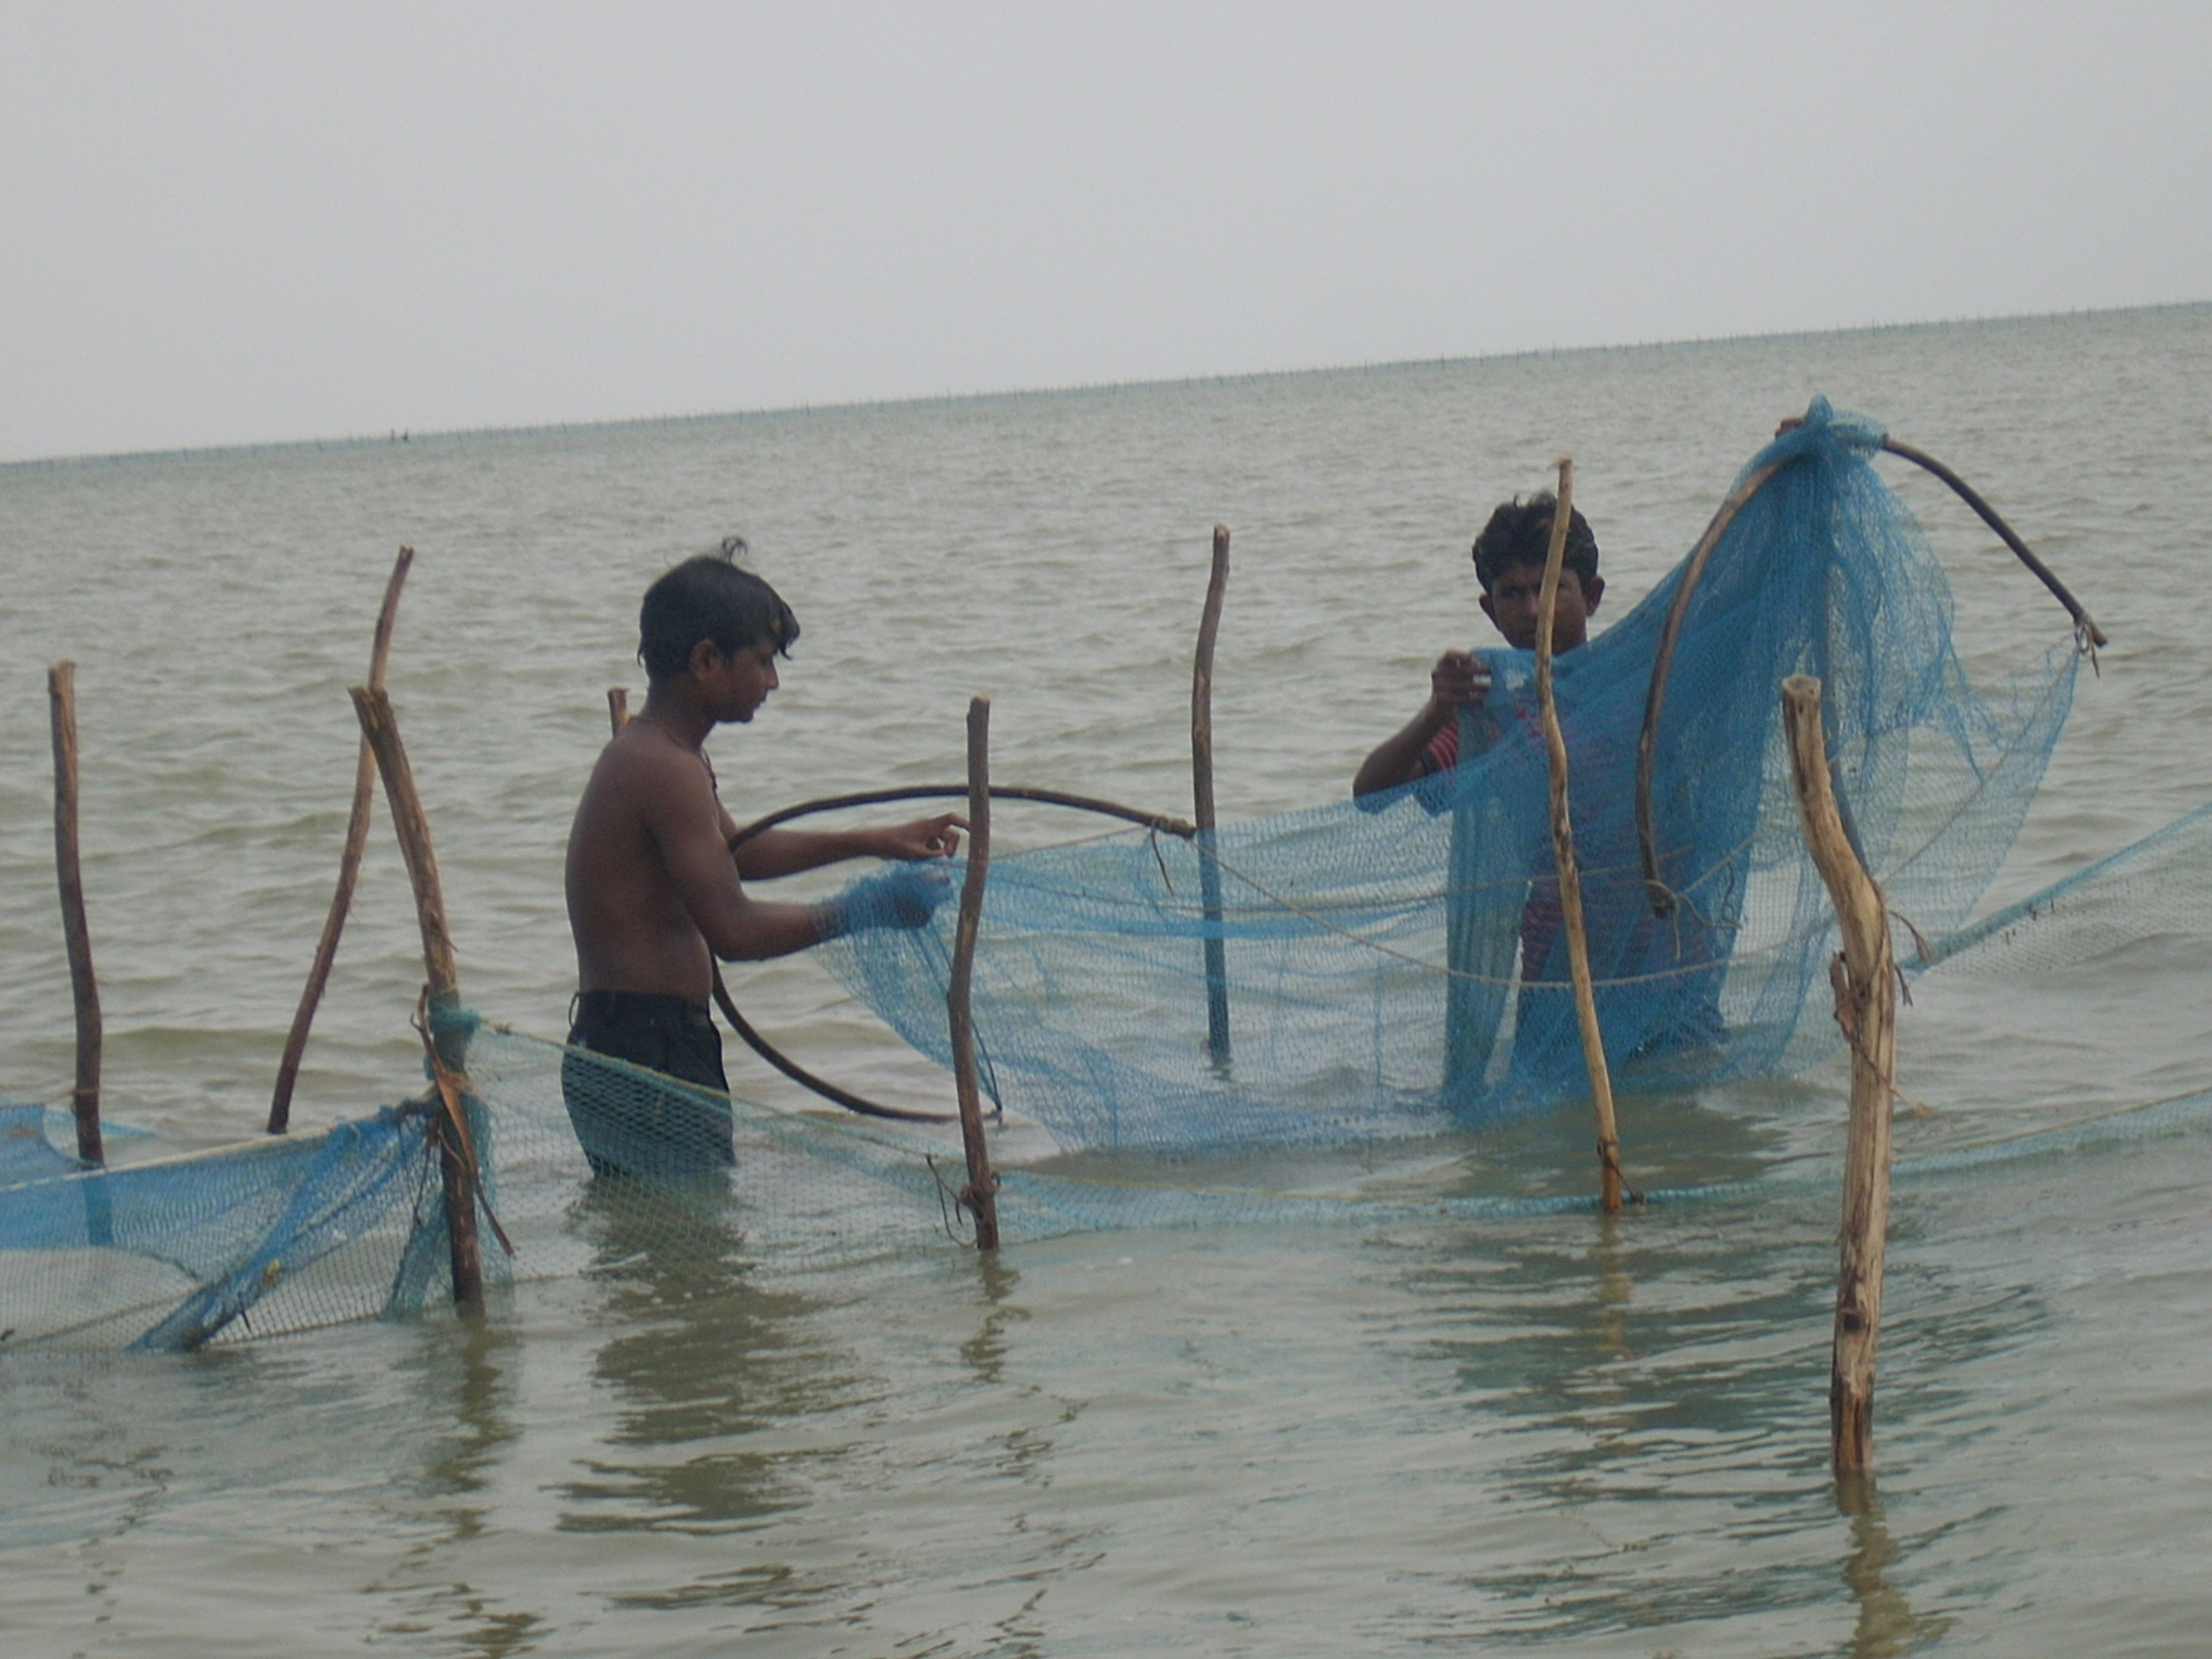 During the four months of monsoon, fisher folks catch ginger prawn in the LRK. Photo by Dhvanit Pandya/AHRM.